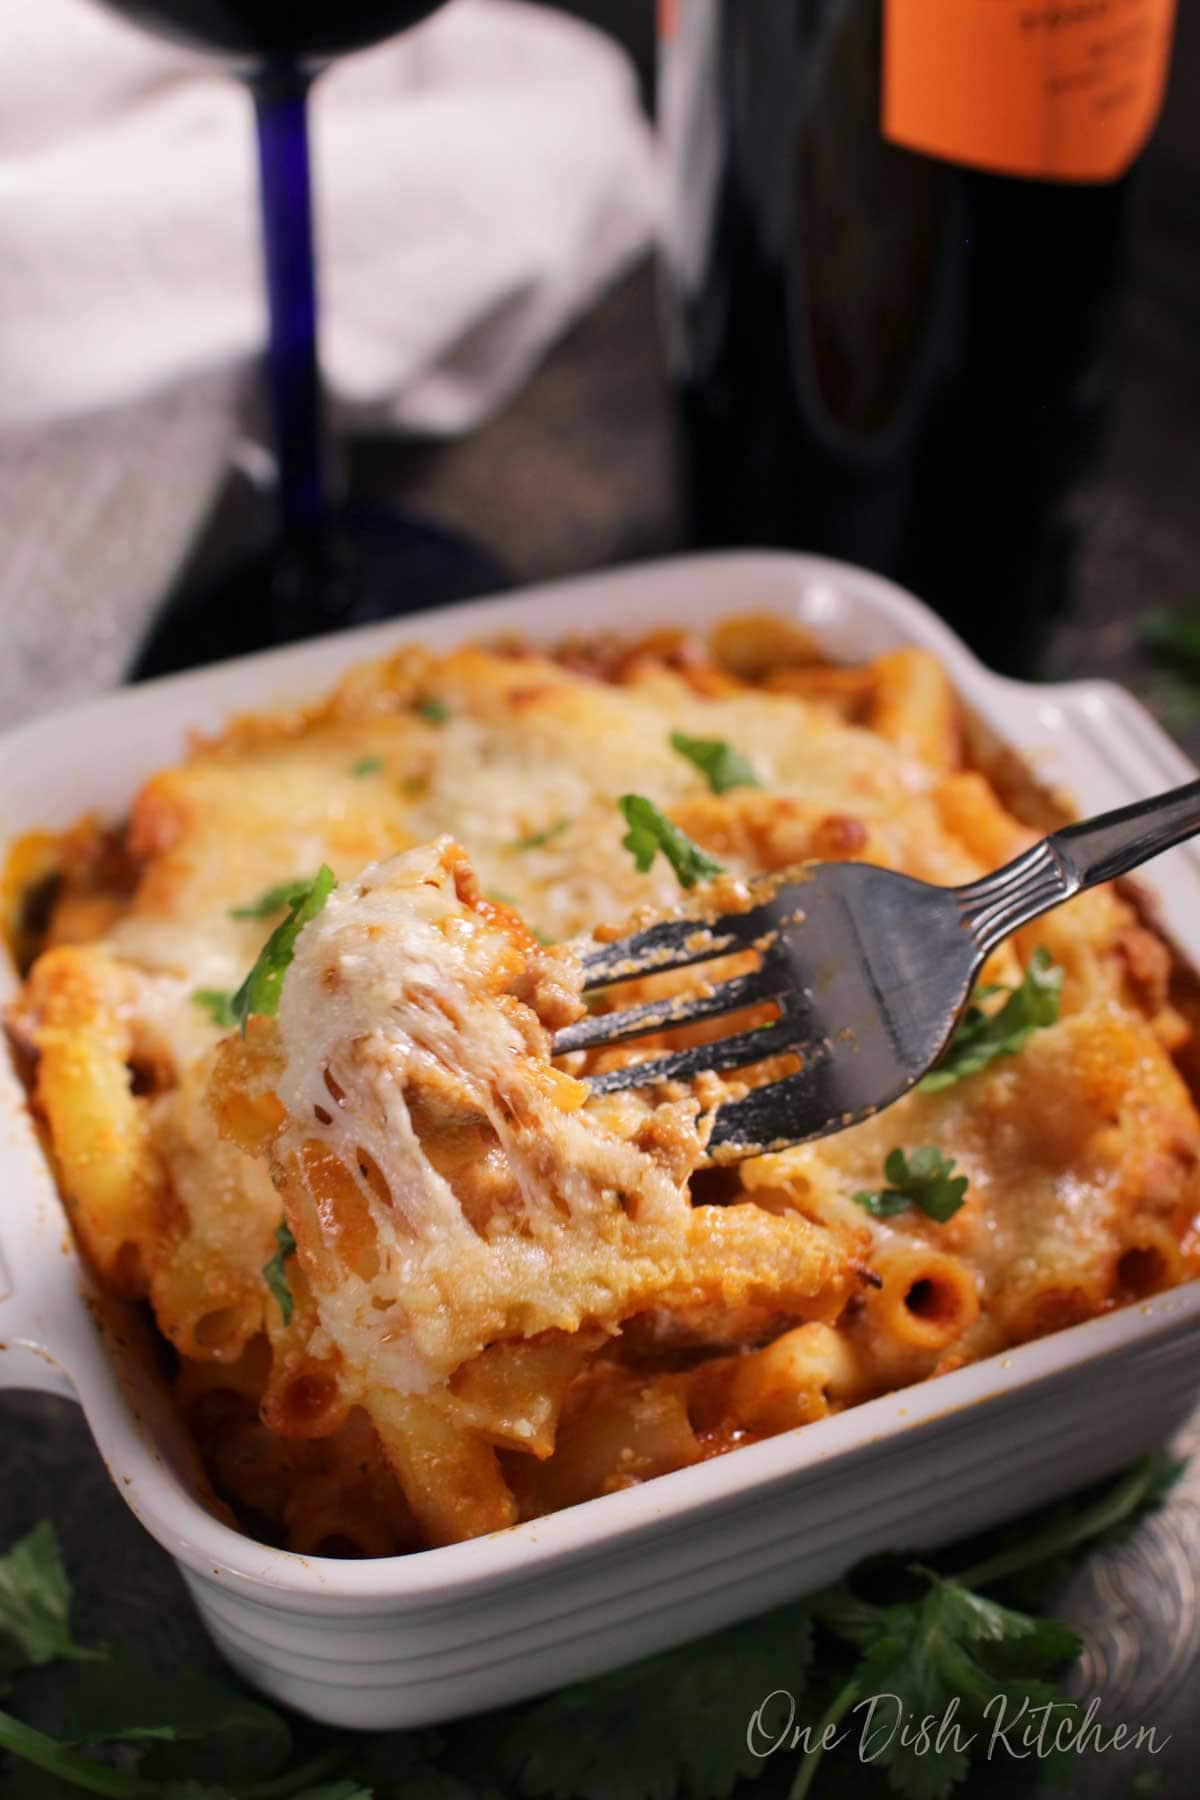 A forkful of a baked ziti casserole with melted cheese hanging from the fork.